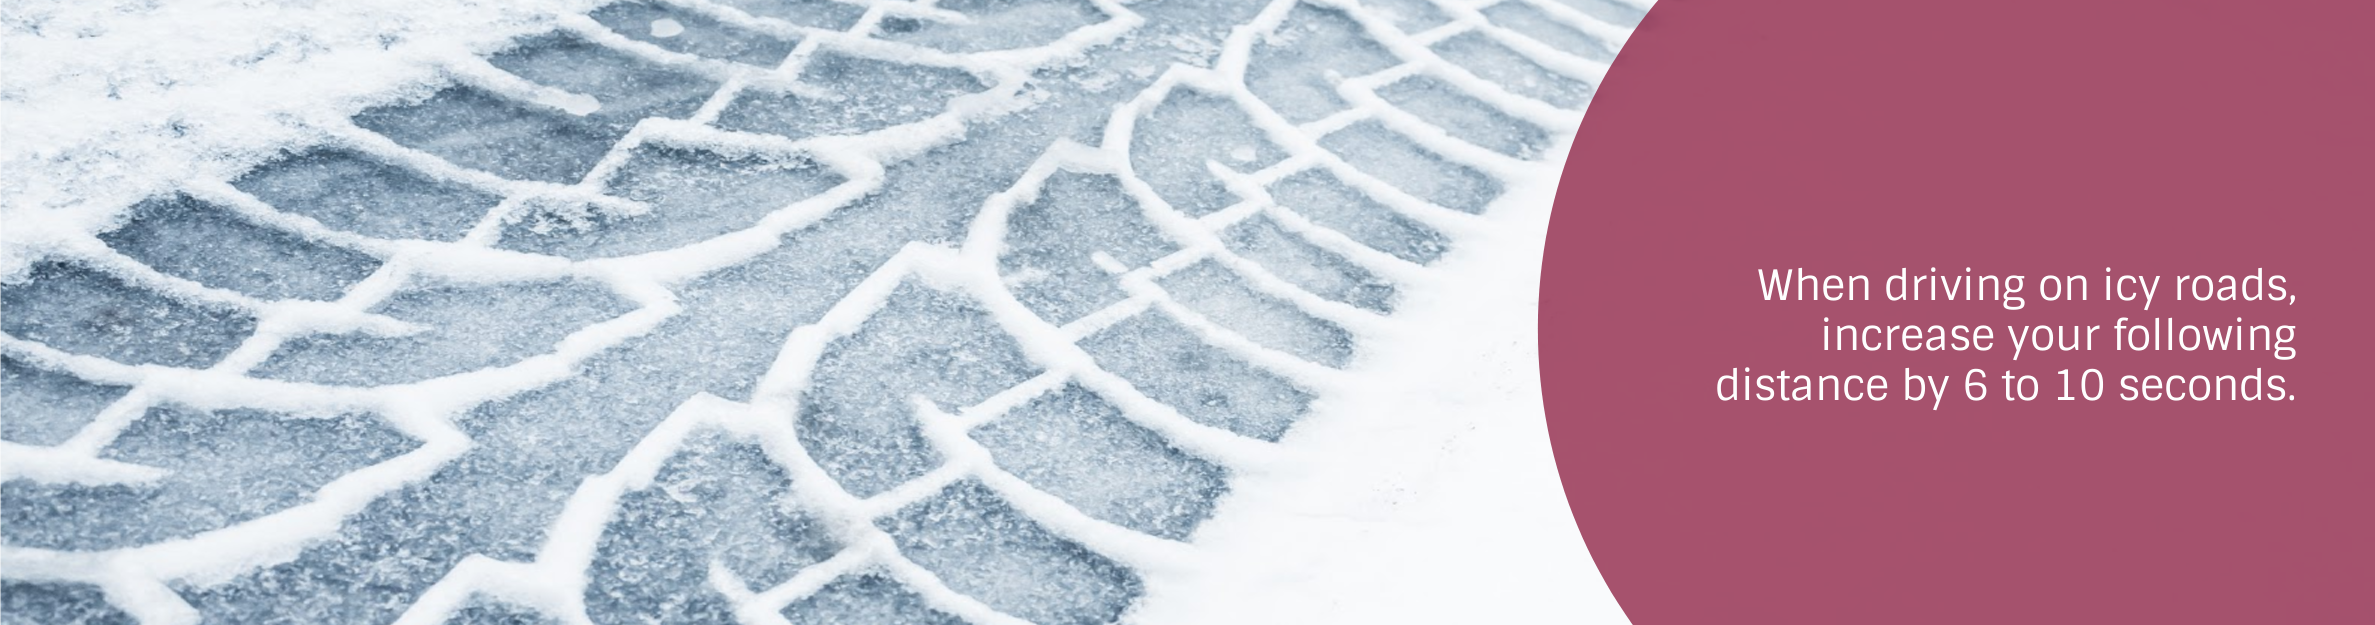 Photo: Snowy tire track Text: When driving on icy roads, increase your following  distance by 6 to 10 seconds.